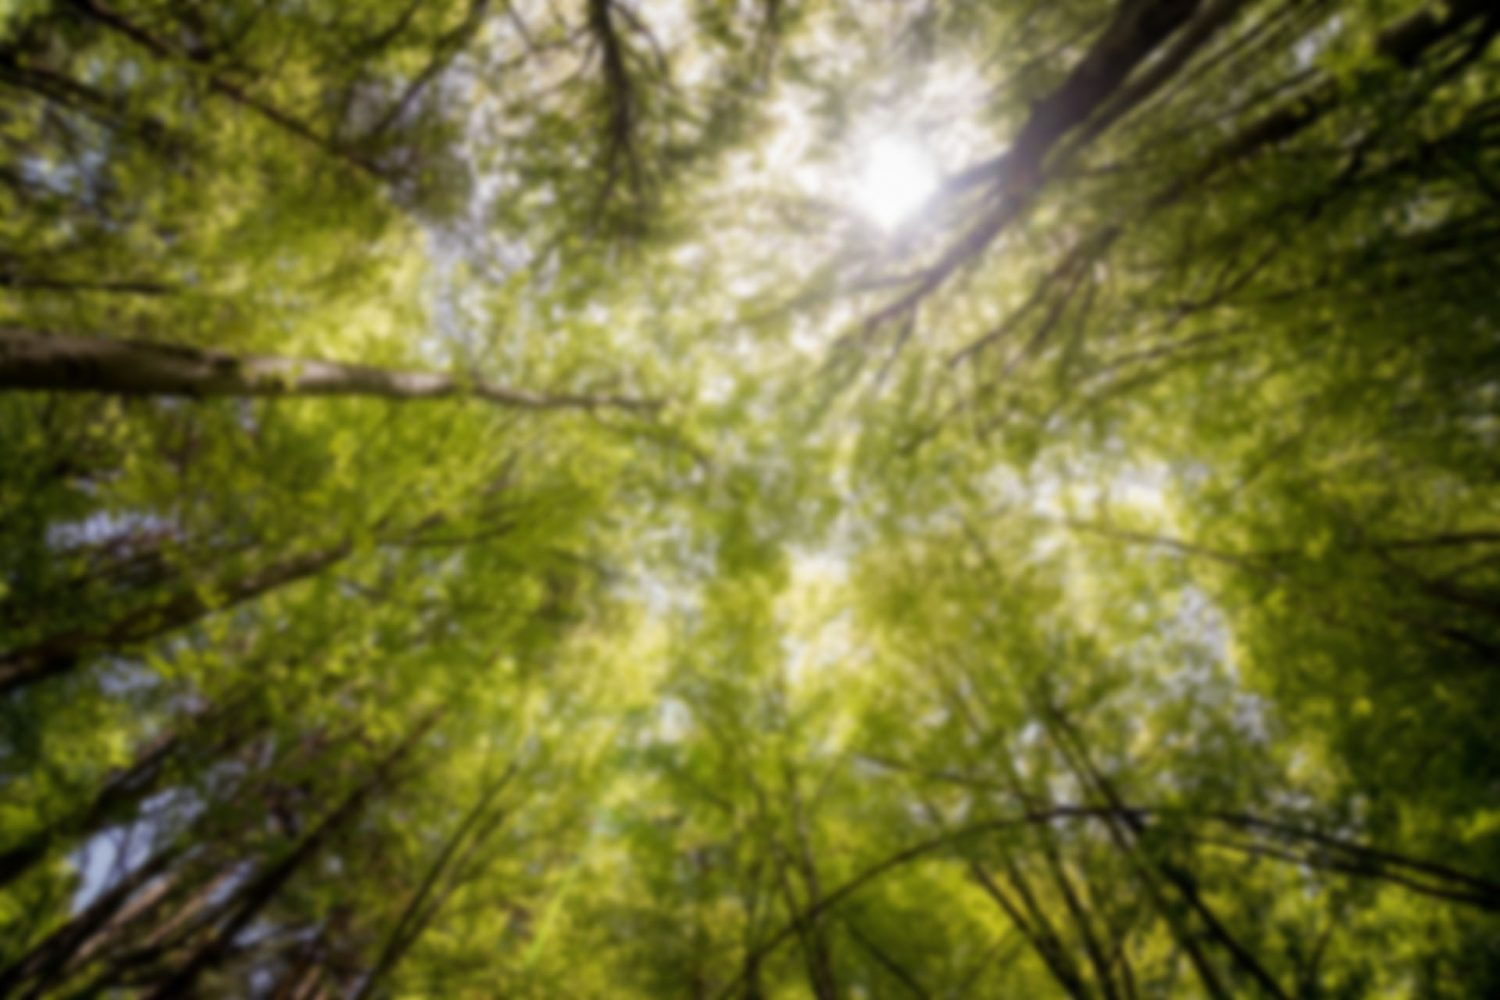 branches-daylight-environment-566496-1